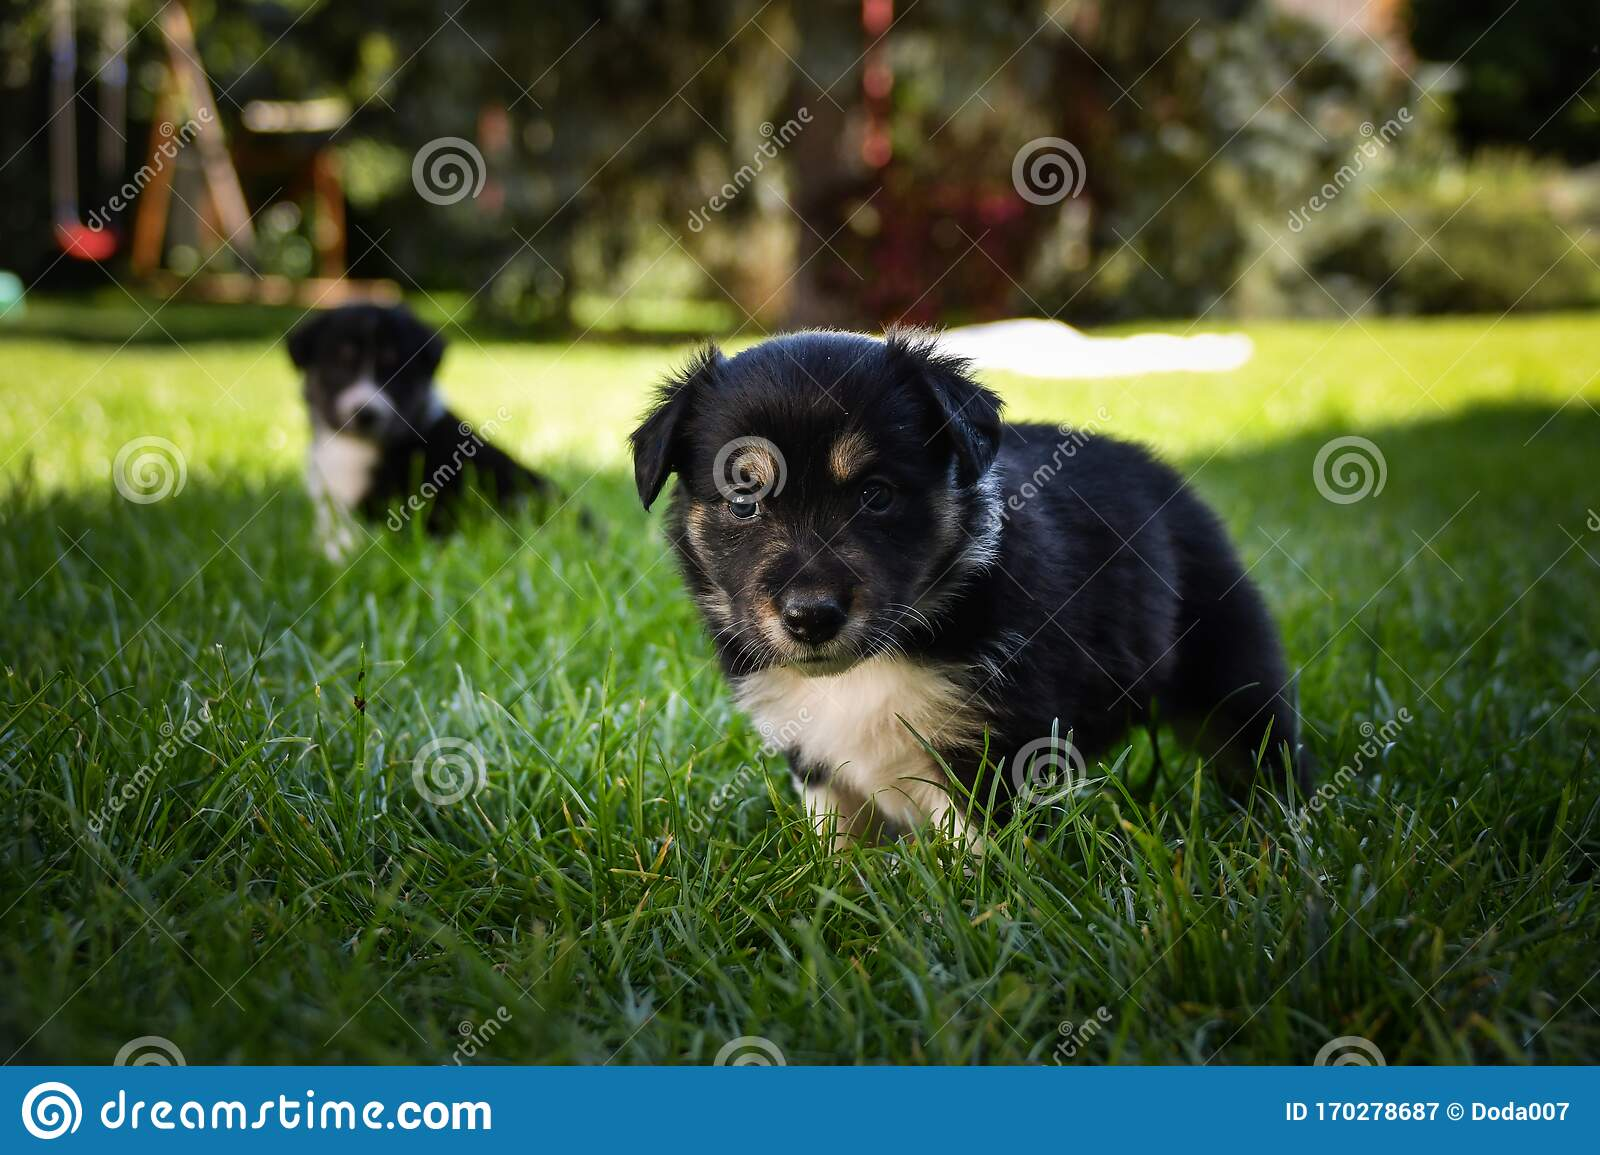 Tricolor Border Collie Puppy He Looks Like Teddybear Stock Image Image Of Nature Animal 170278687